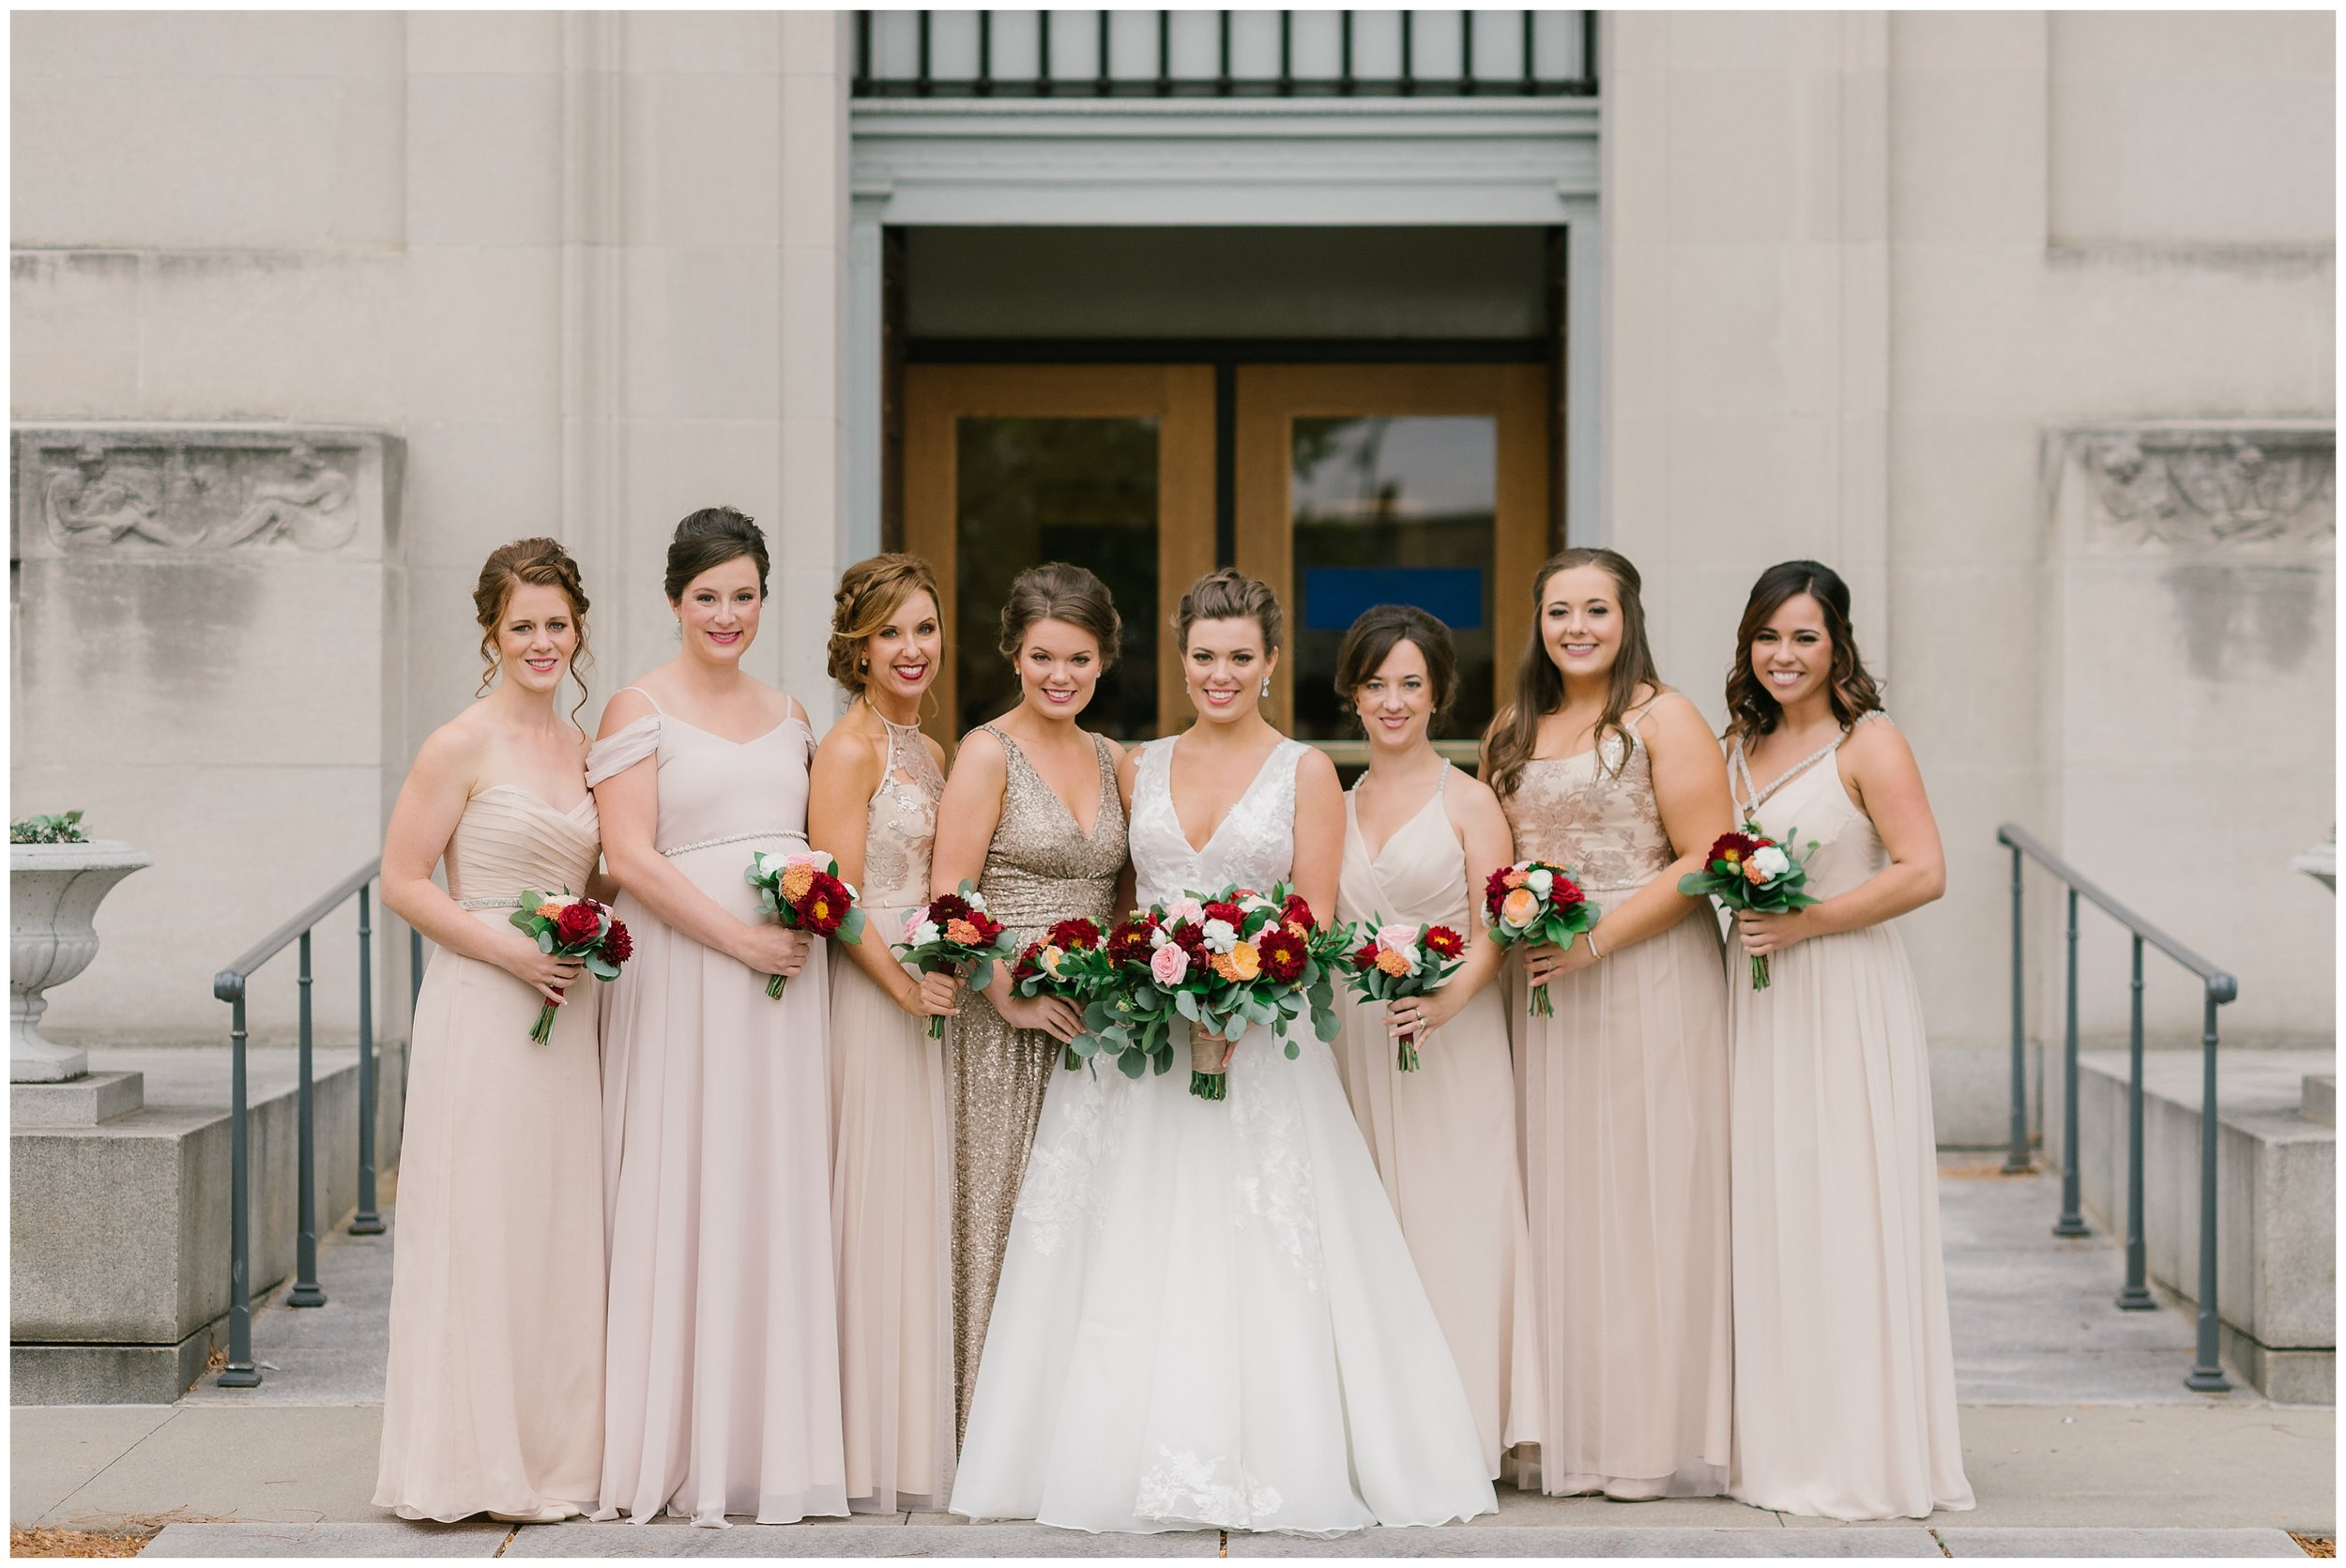 Rebecca_Shehorn_Photography_Indianapolis_Wedding_Photographer_7720.jpg